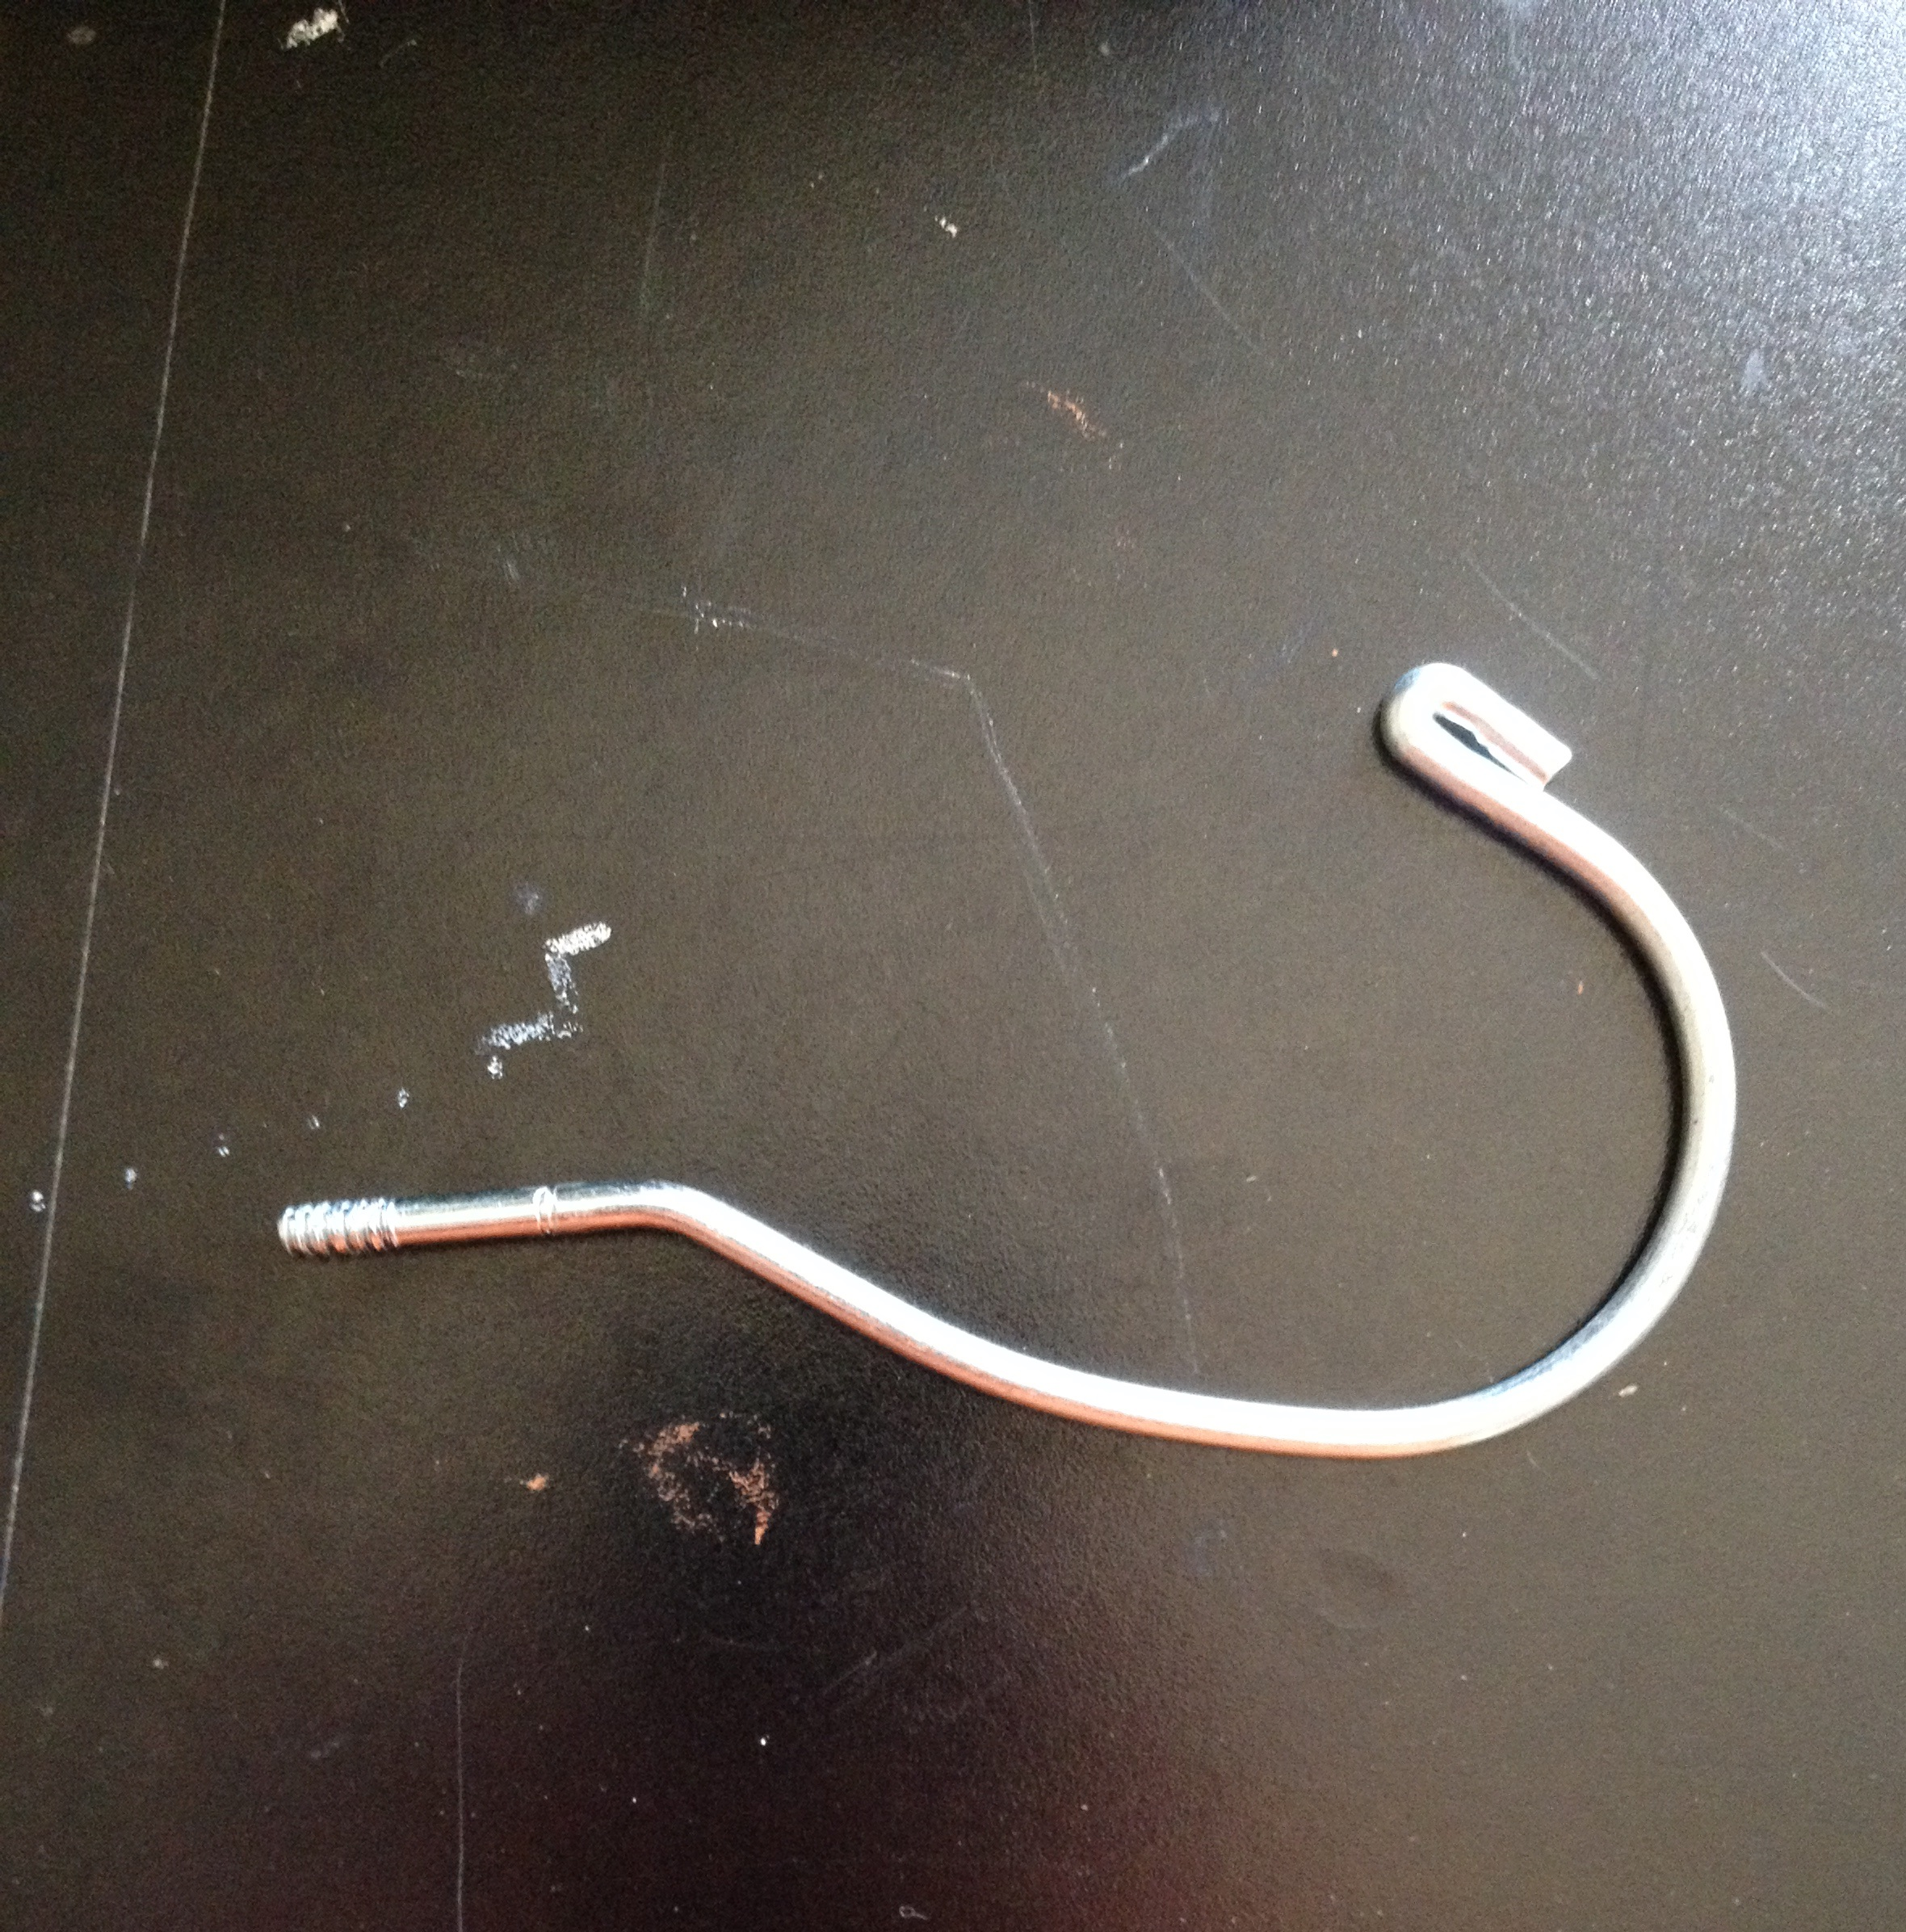 Picture of Removing the Hook From the Plastic Hanger.